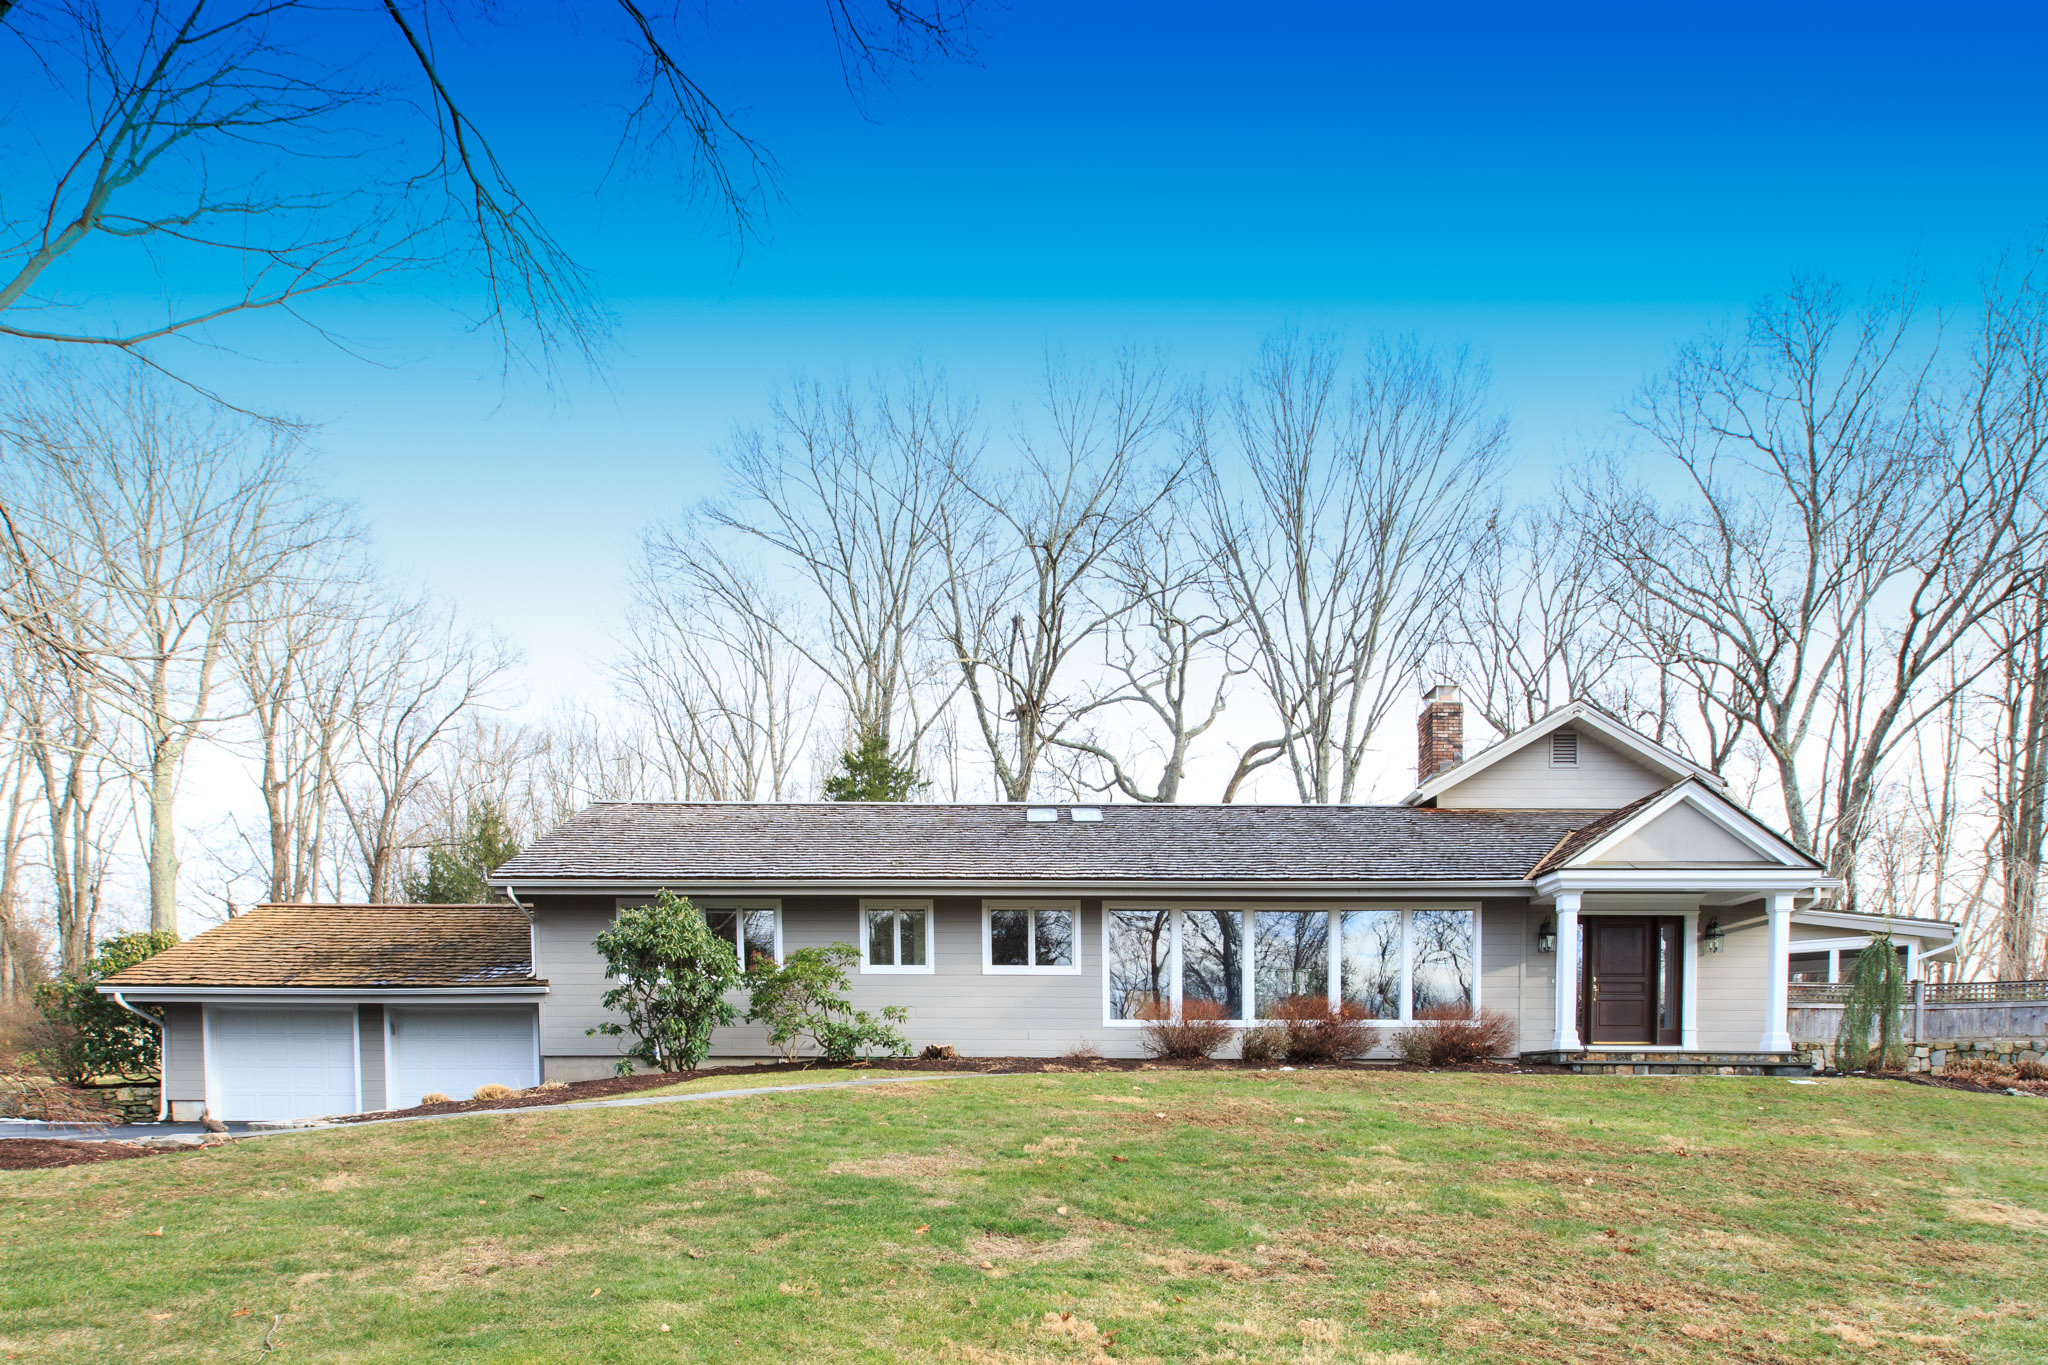 Open House At 12 3pm On Sunday At 36 Chalburn Rd Reddin